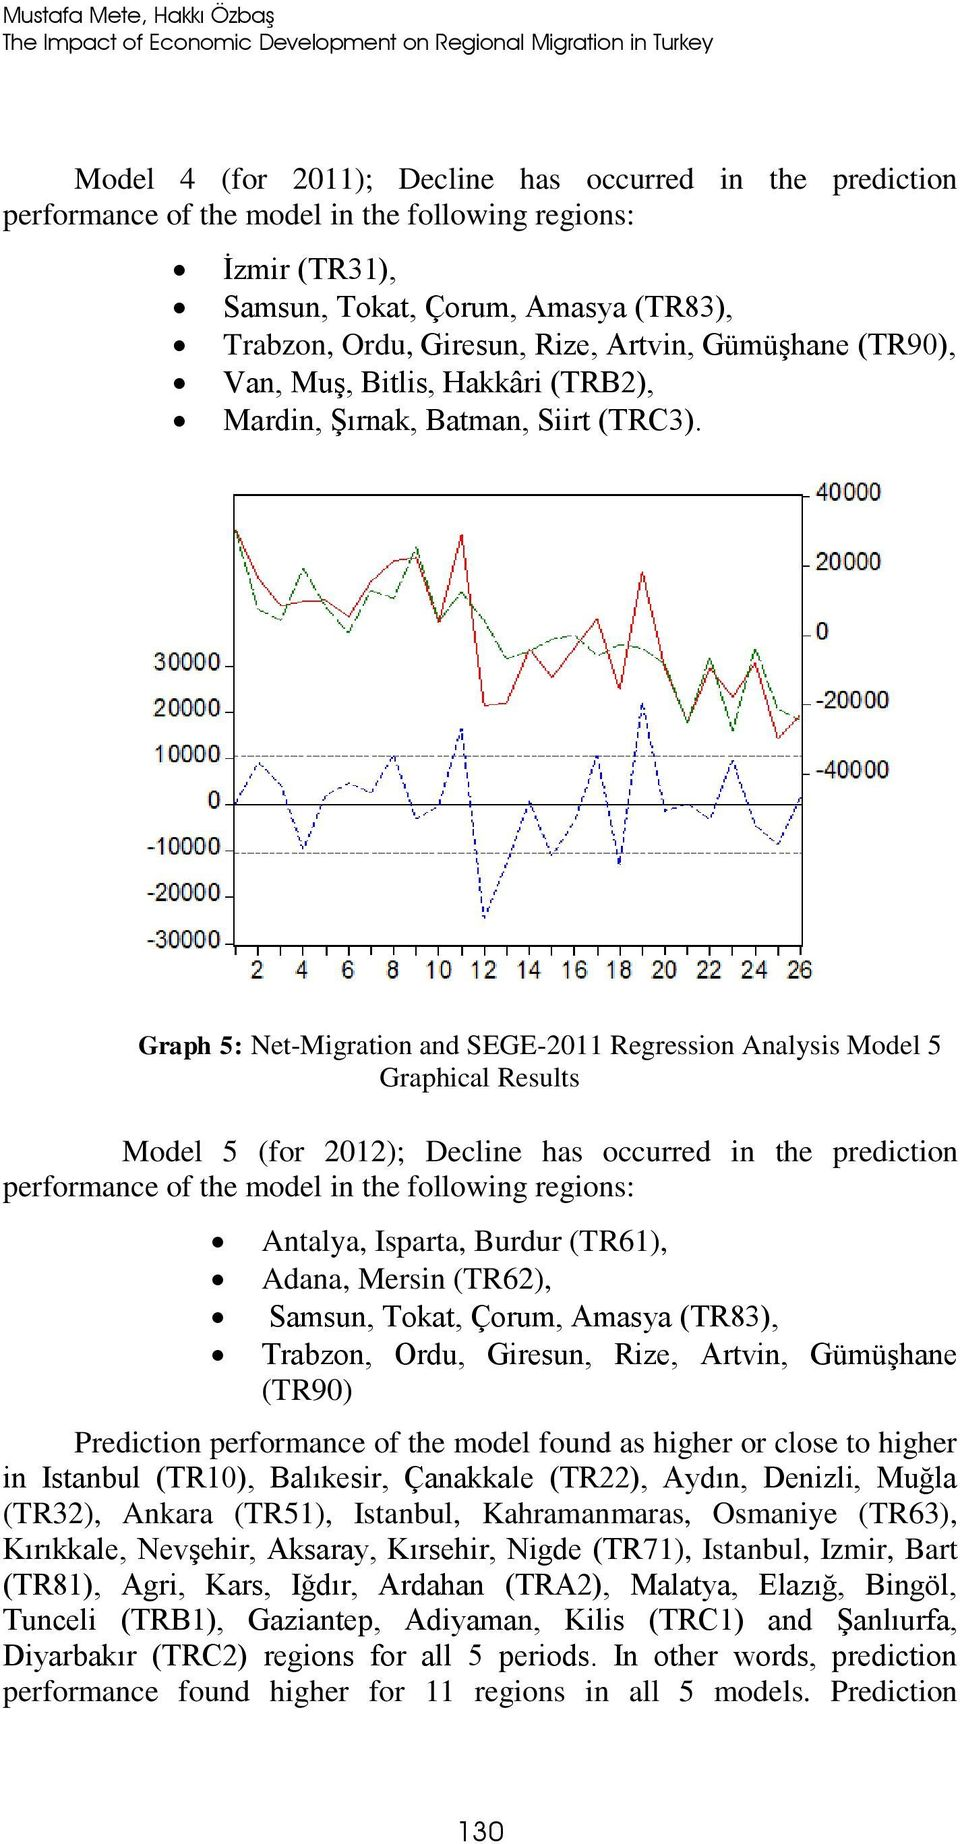 Graph 5: NetMigration and SEGE2011 Regression Analysis Model 5 Graphical Results Model 5 (for 2012); Decline has occurred in the prediction performance of the model in the following regions: Antalya,